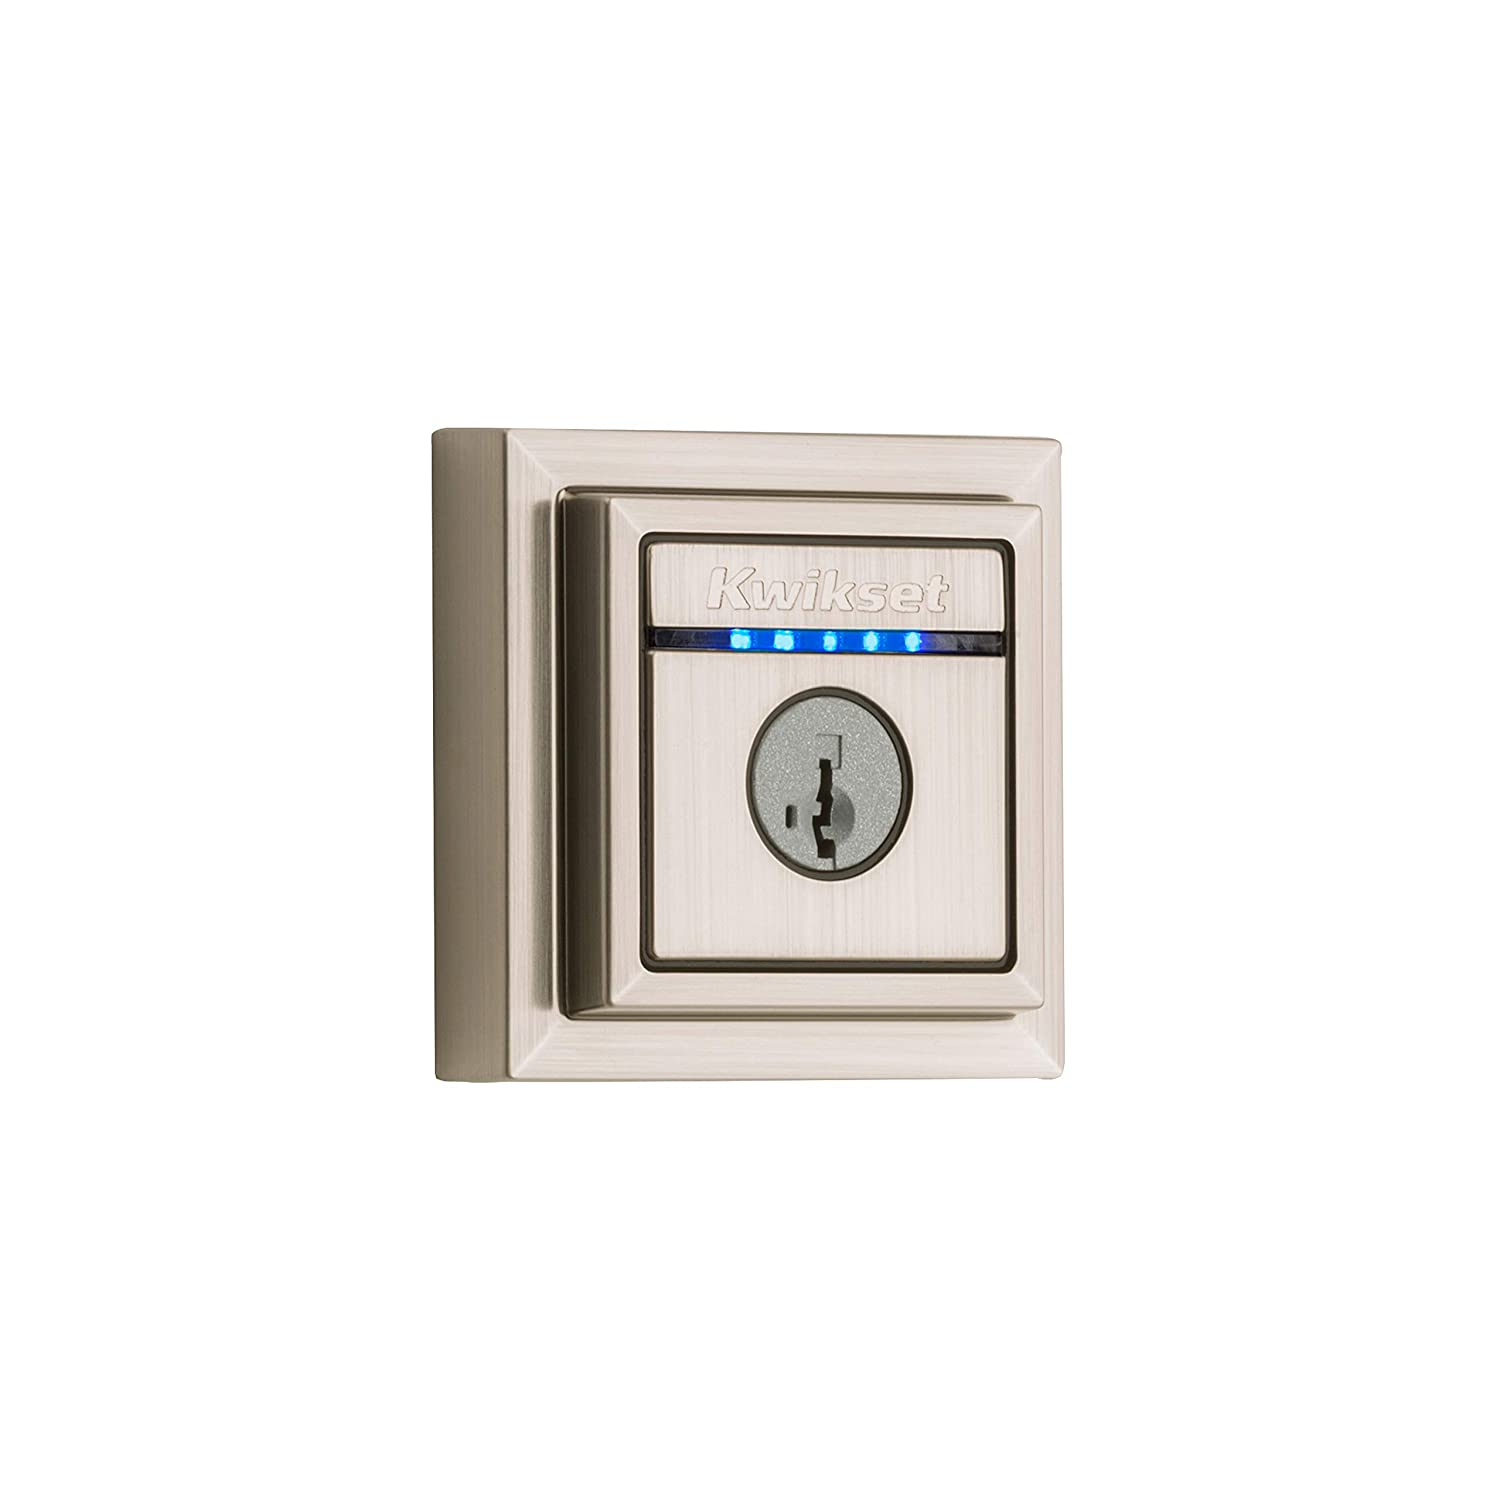 Kwikset 99250-206 Kevo 2nd Gen Contemporary Square Single Cylinder Touch-to-Open Bluetooth Deadbolt Satin Nickel